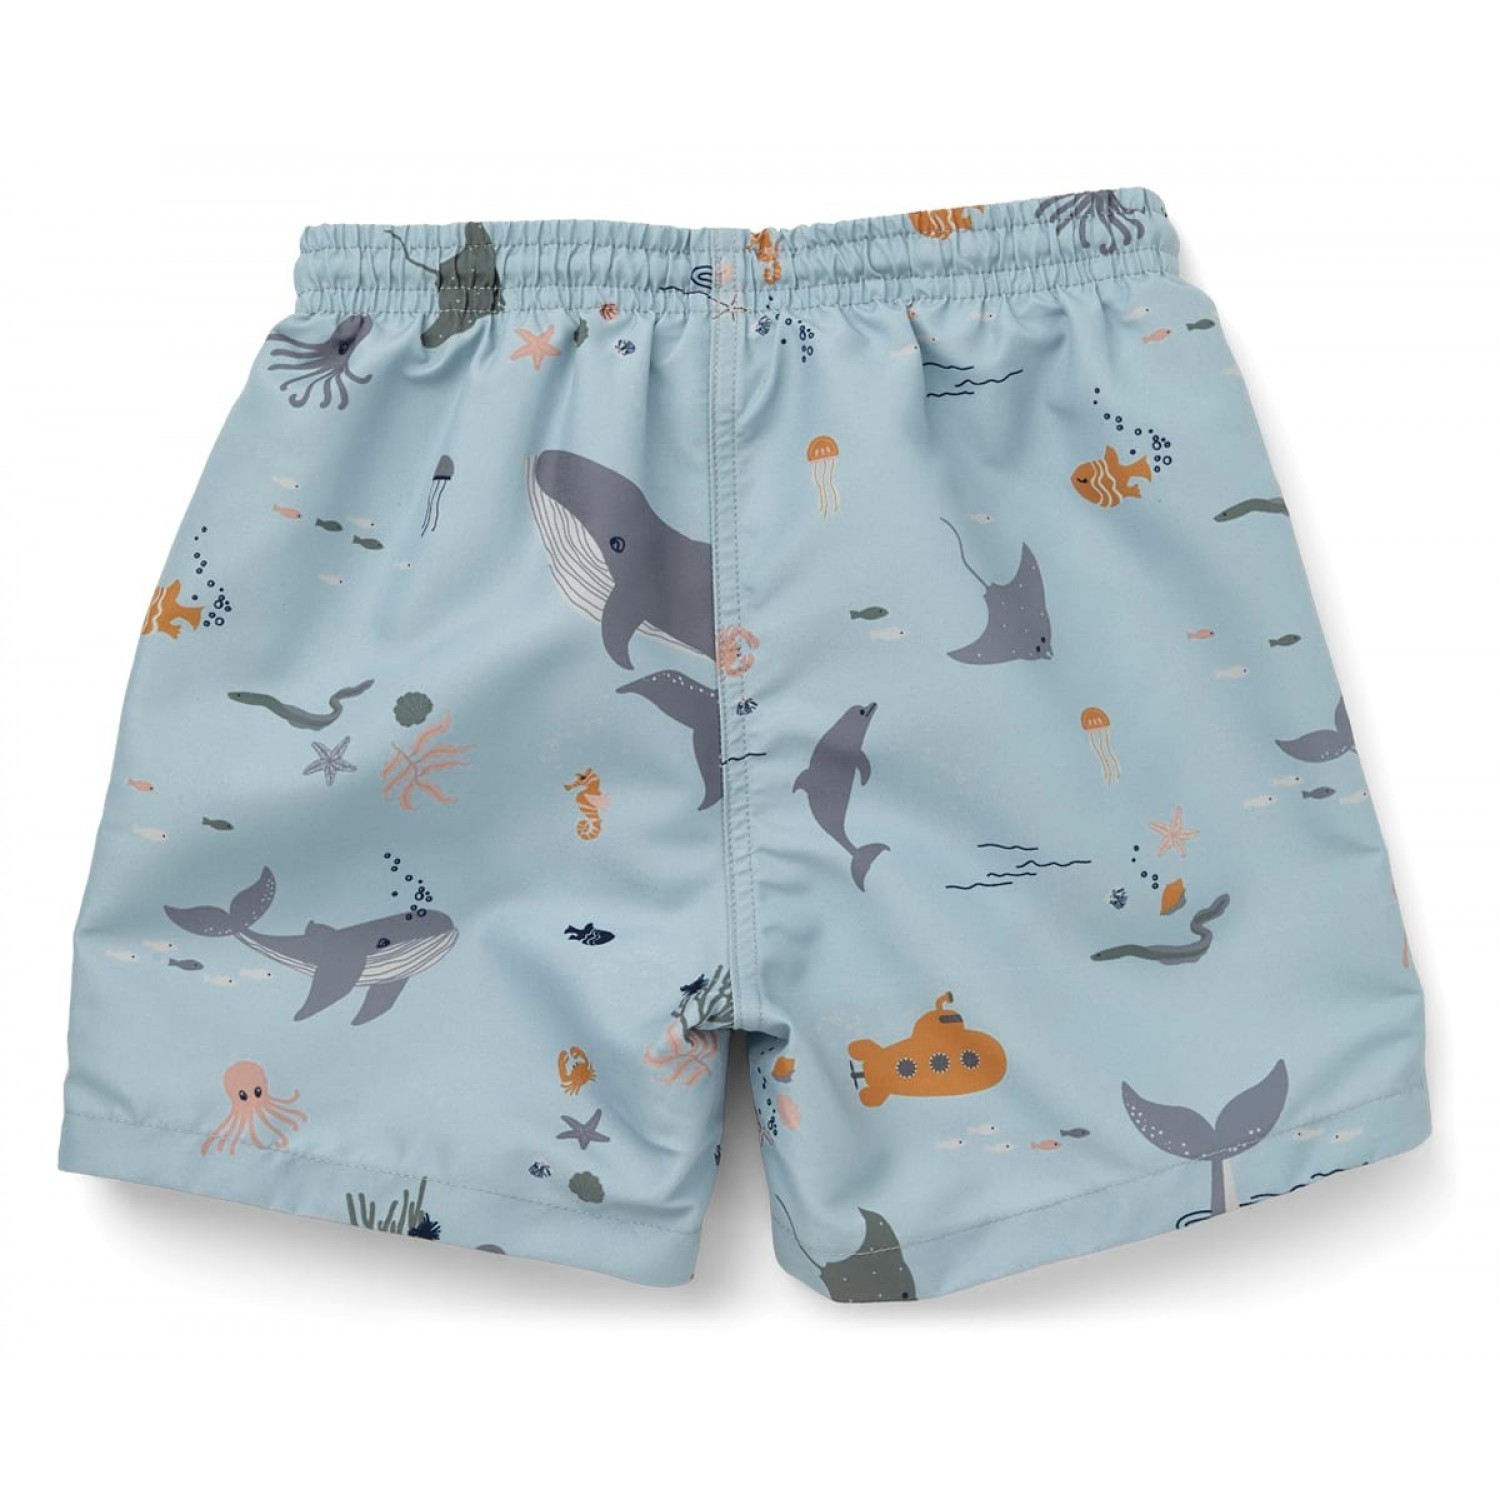 Duke board shorts - Sea creature mix